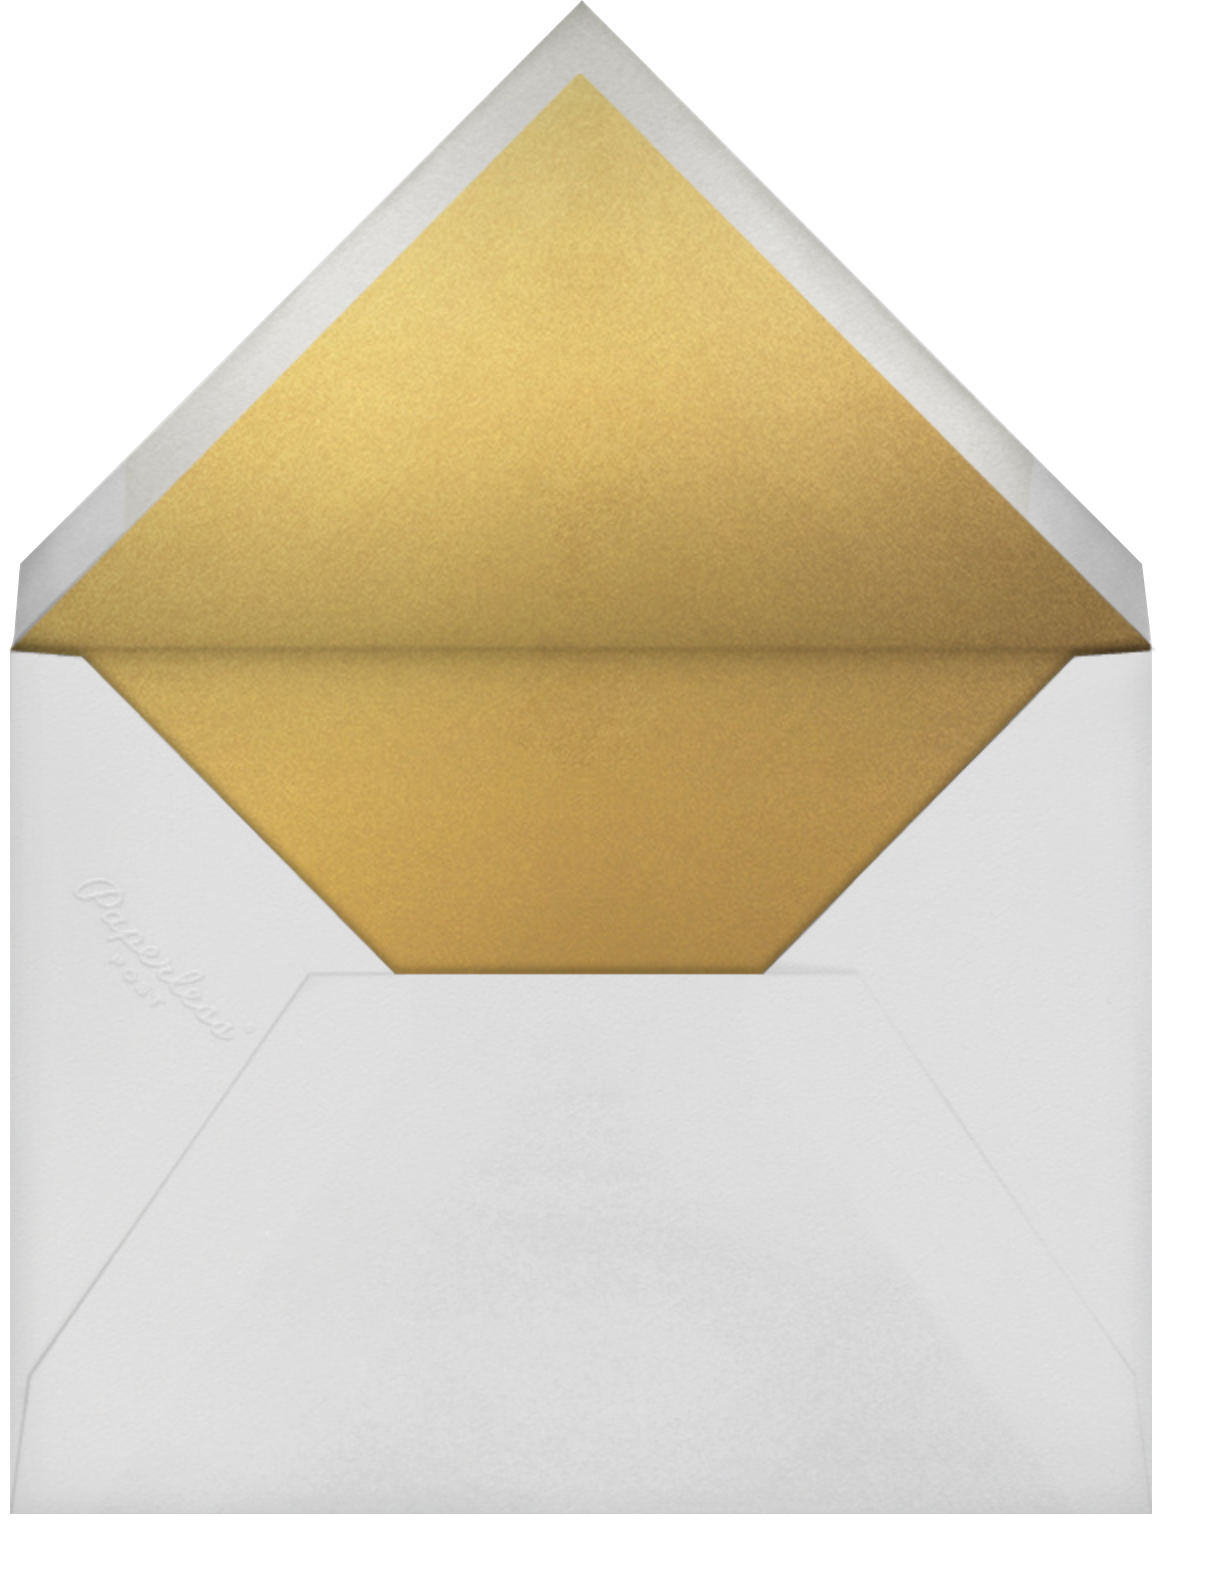 Gold Eclipse - Paperless Post - Gold and metallic - envelope back